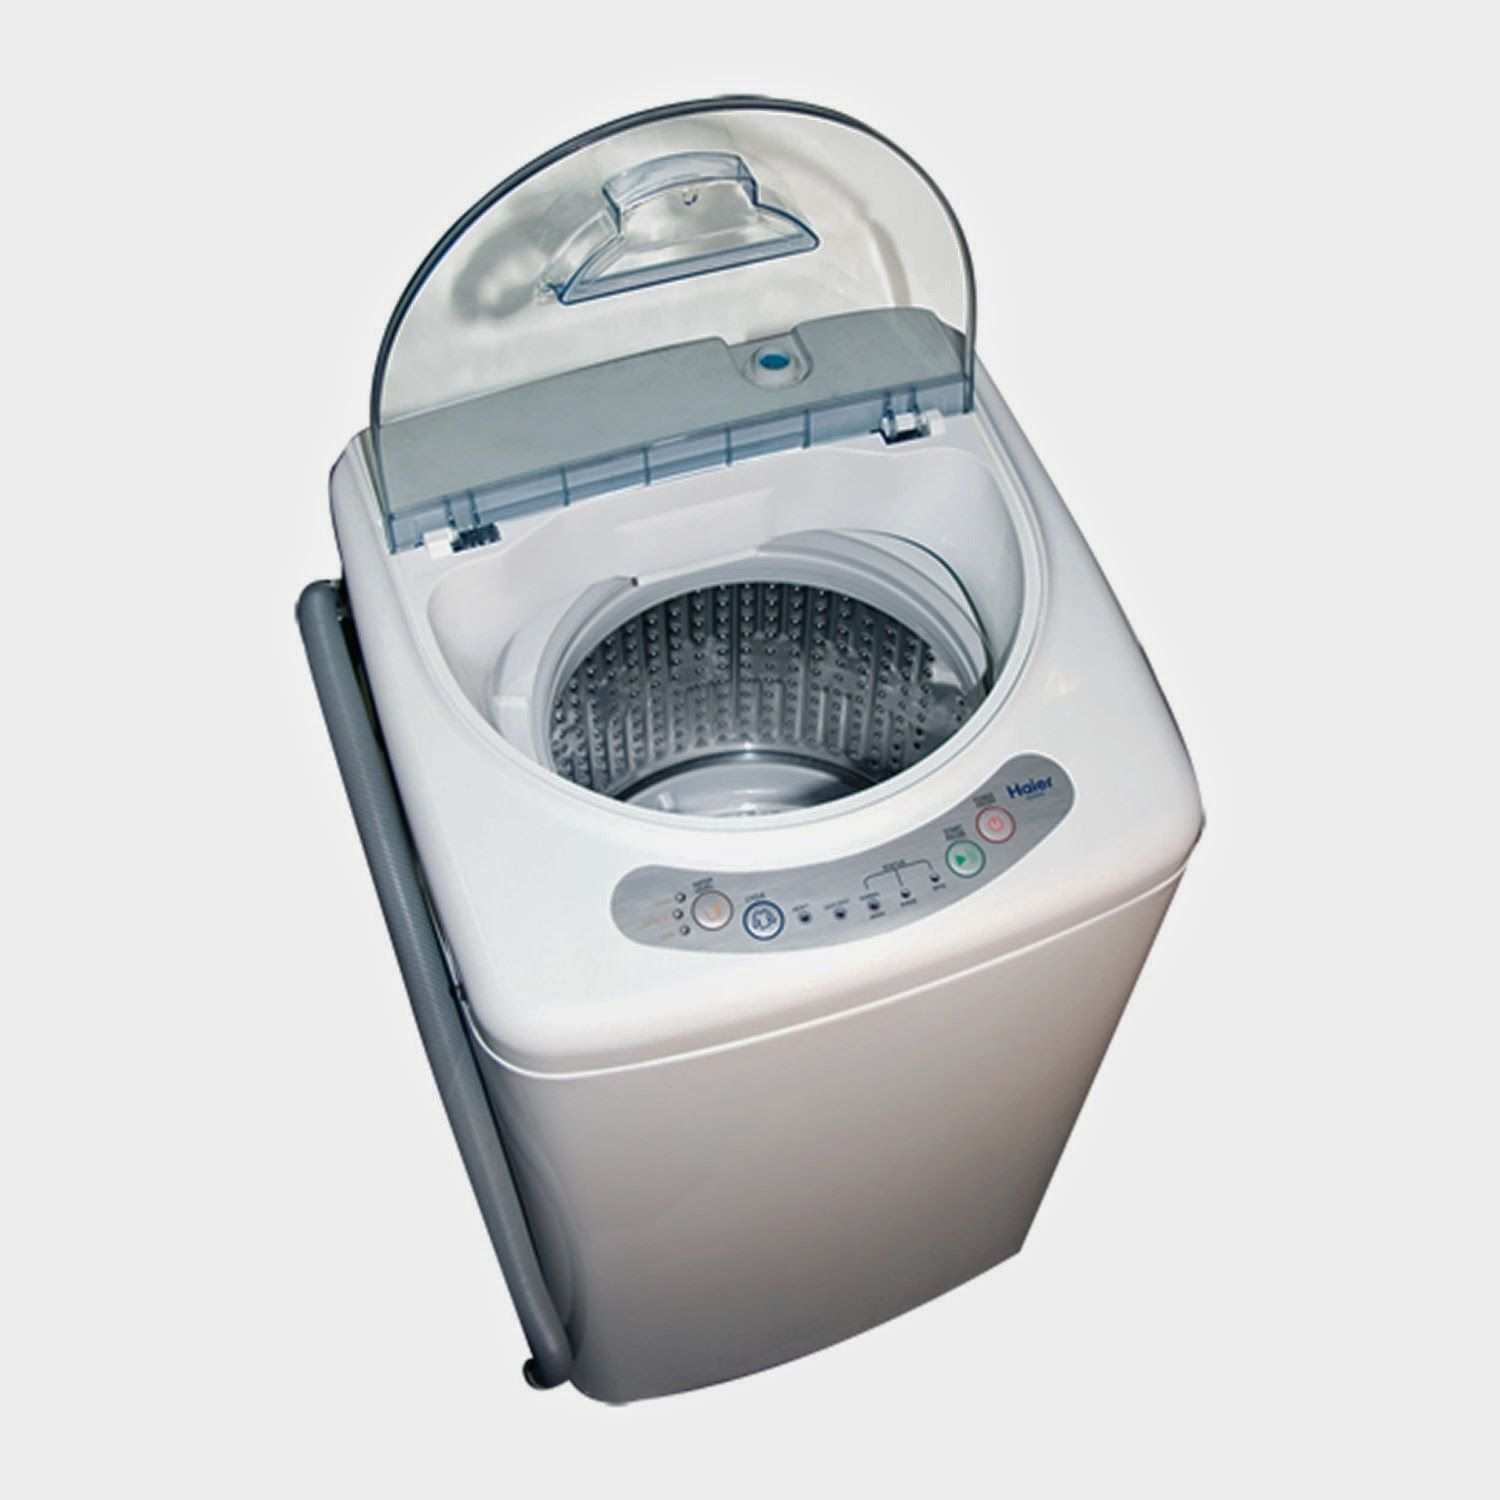 Apartment Size Washer And Dryer Stackable Small Washing Machine